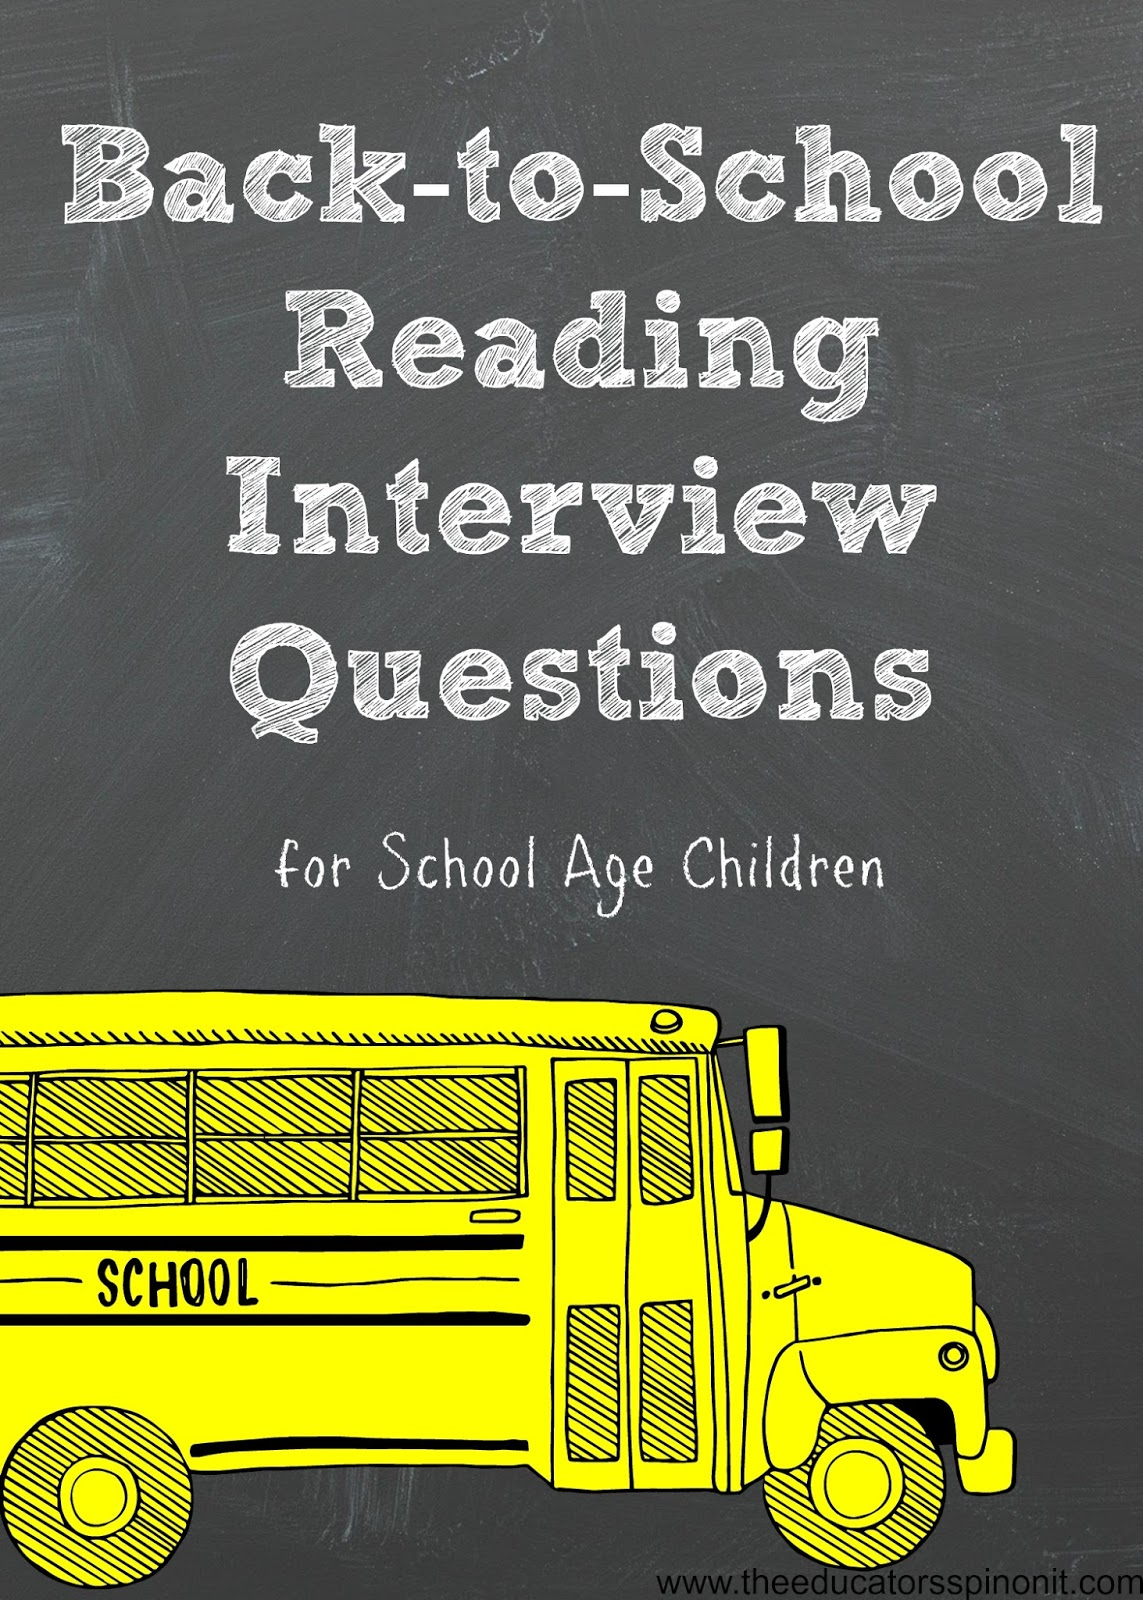 back to school reading interview back to school reading interview questions for school age children beginning of the year interview